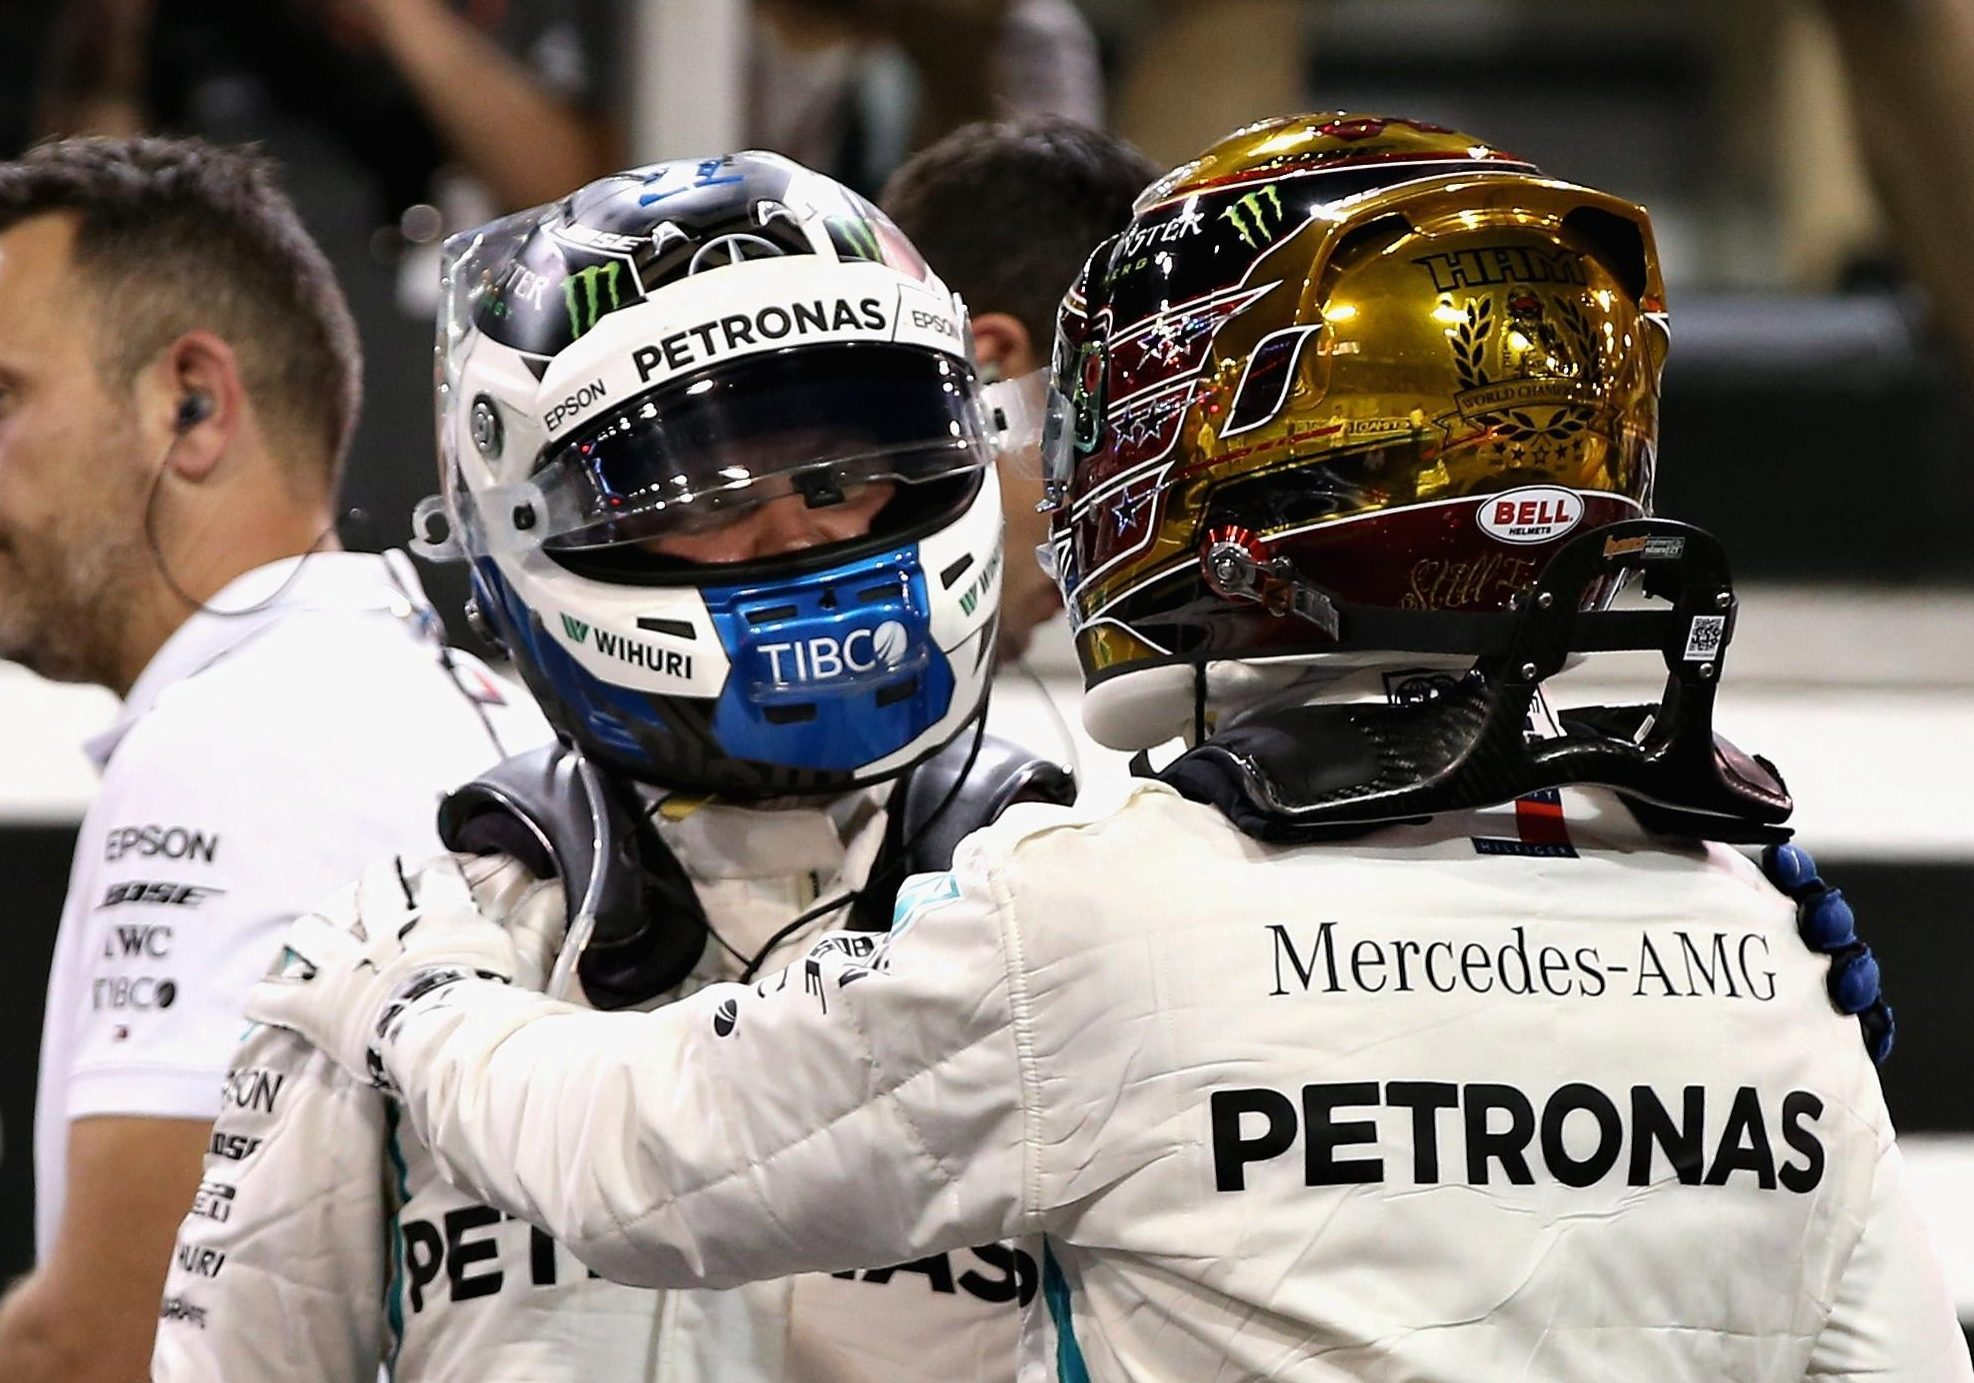 Hamilton's team-mate Valtteri Bottas will line up alongside the Brit at the front of the grid